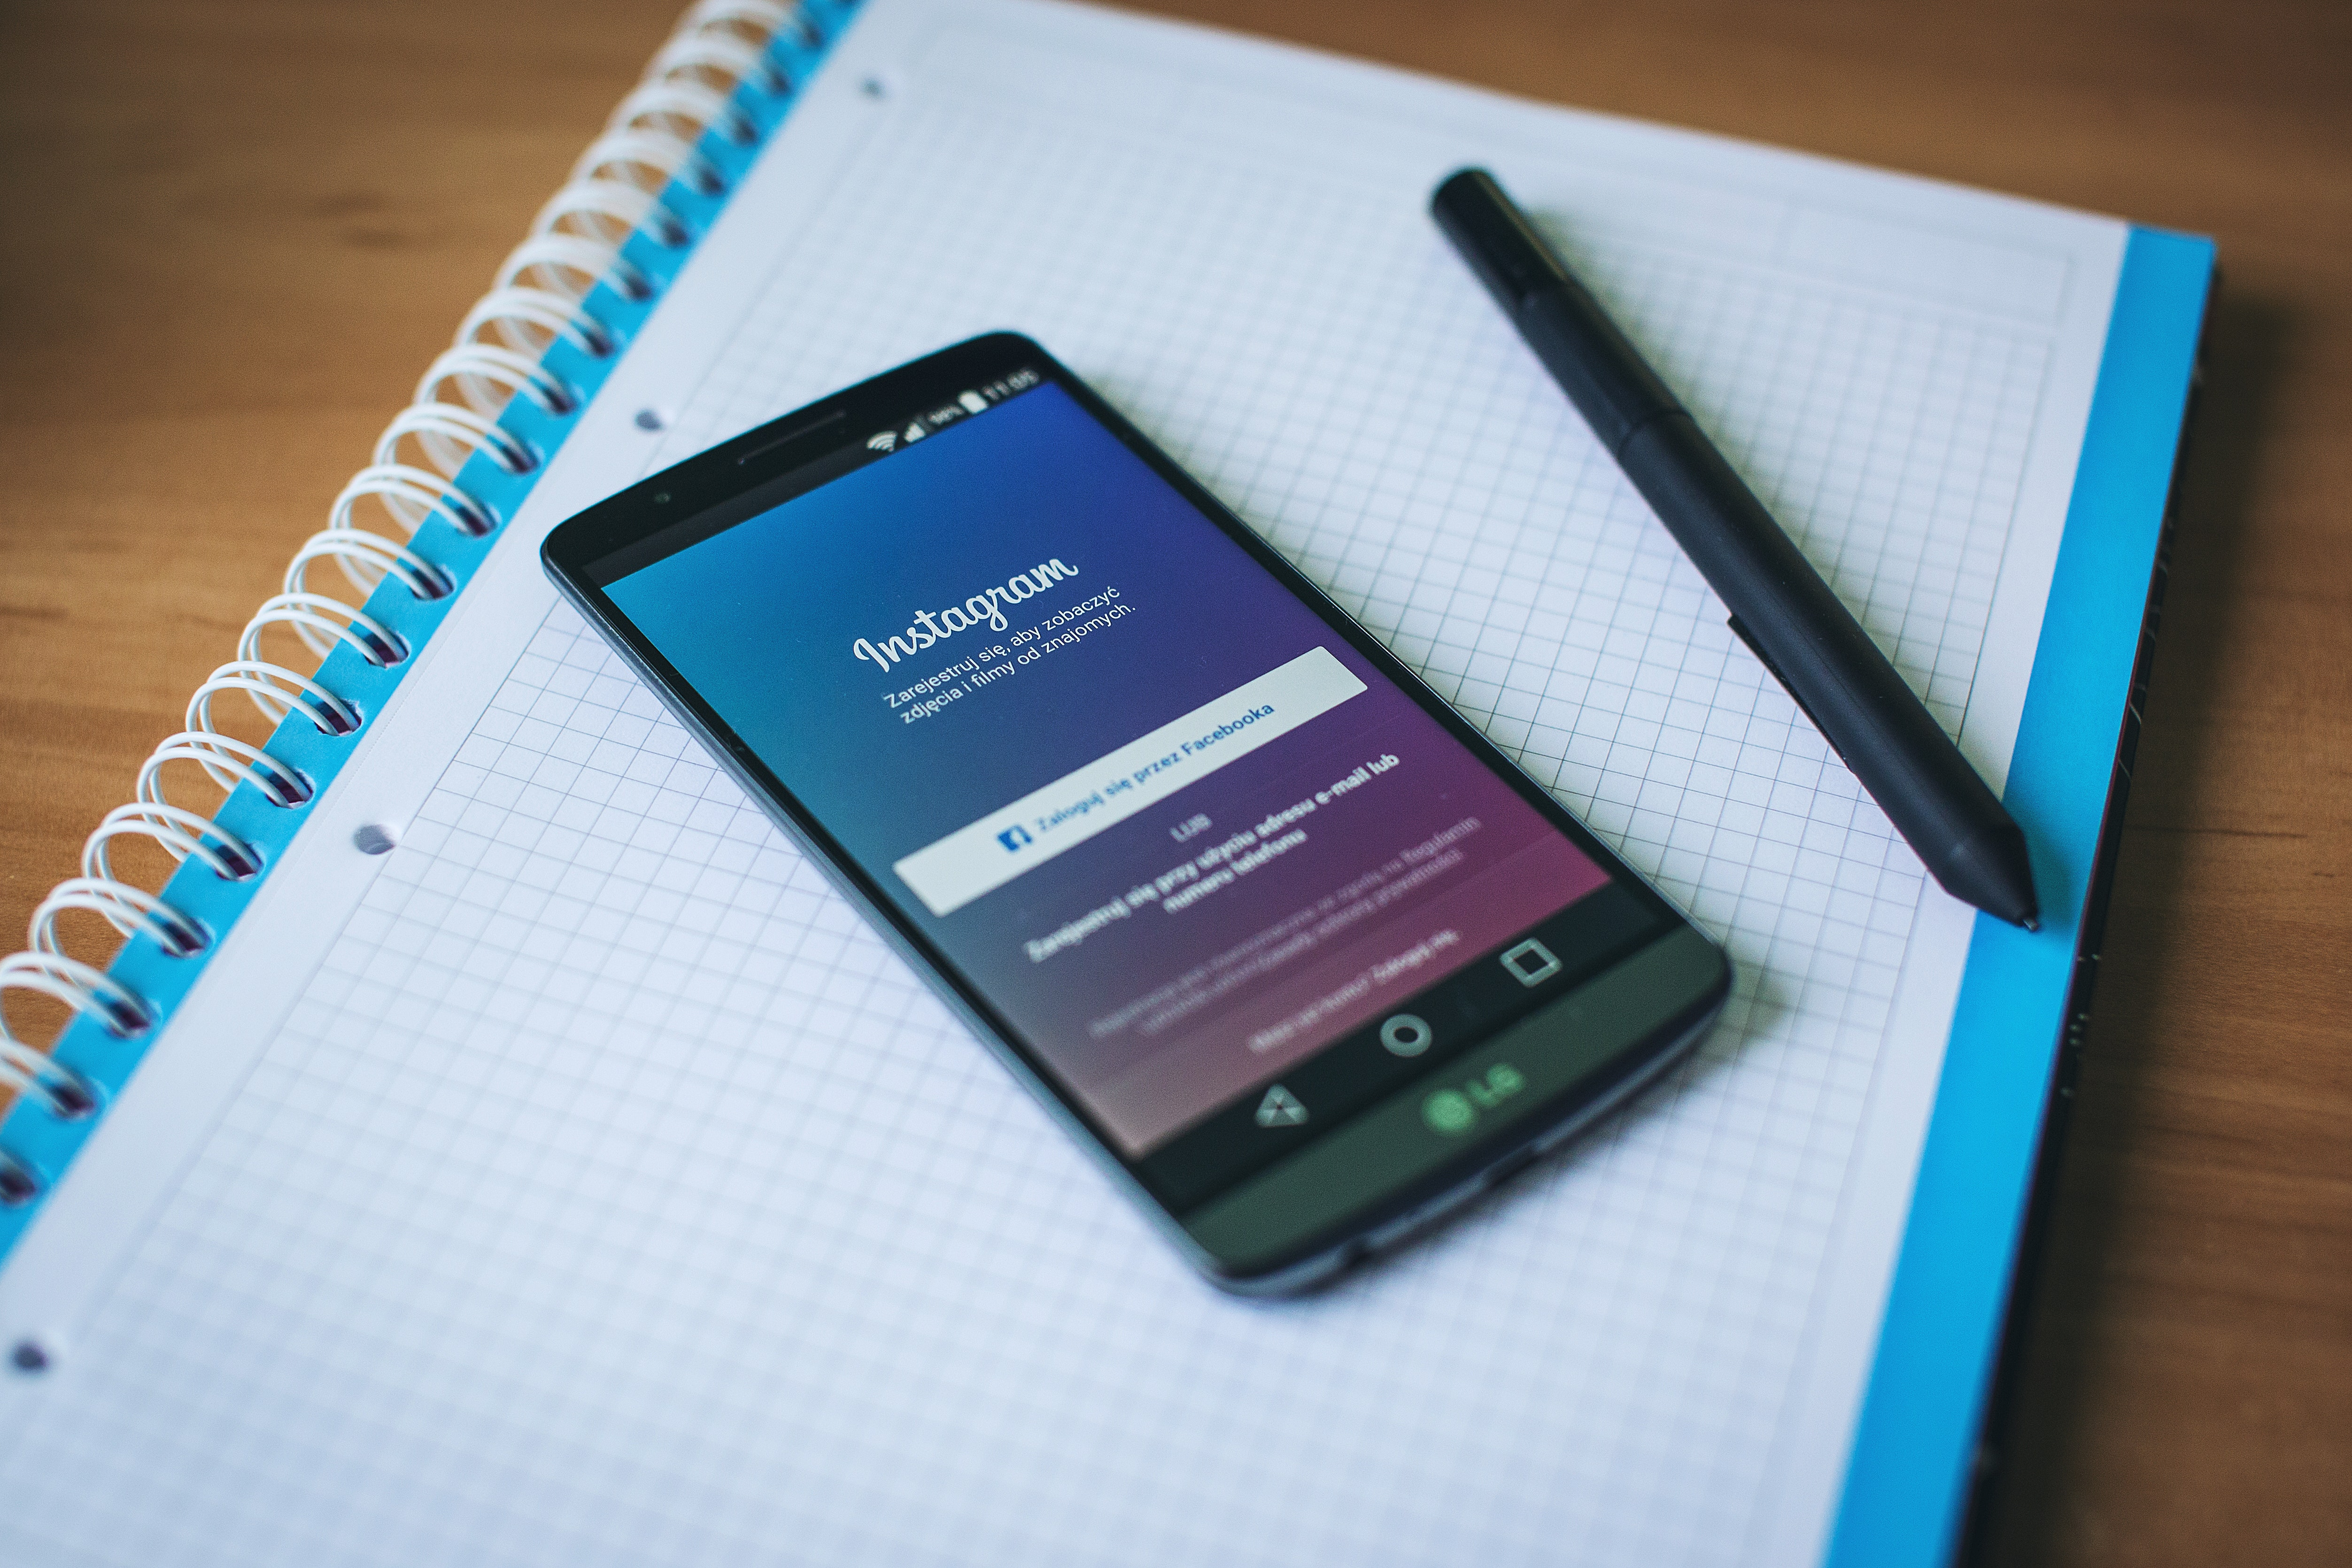 instagram open on phone on a notebook